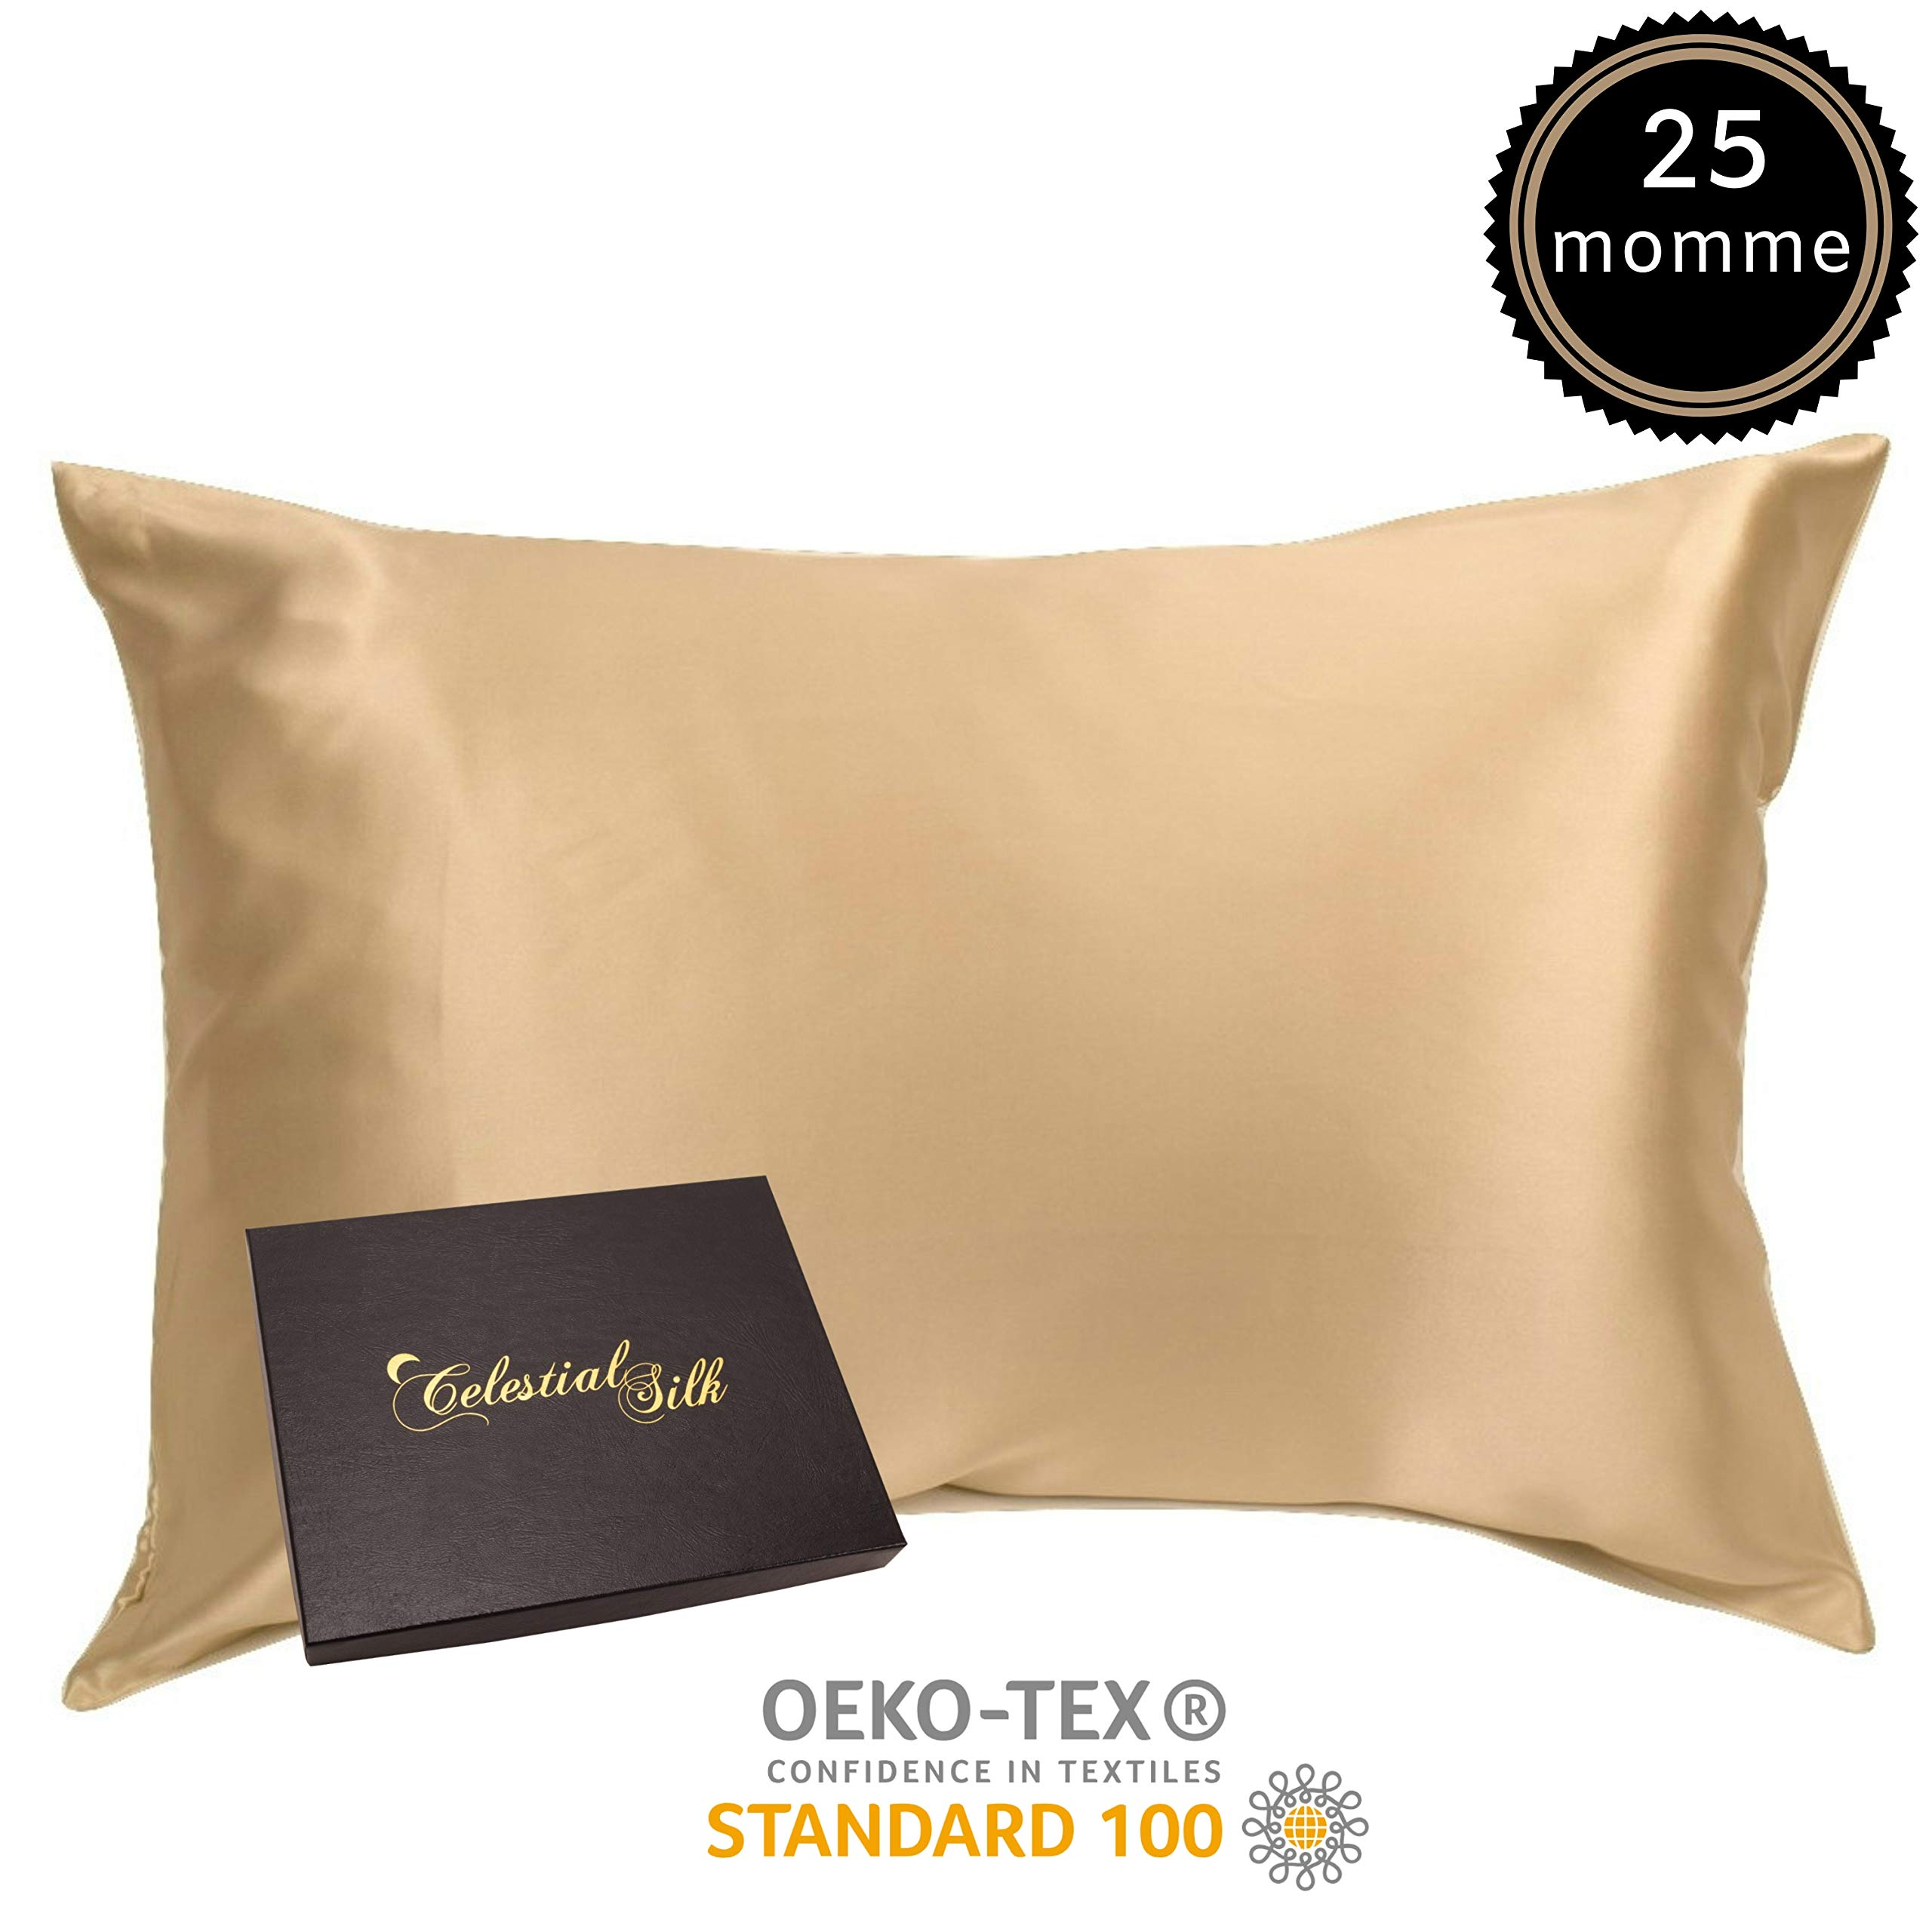 100 Silk Pillowcase For Hair Zippered Luxury 25 Momme